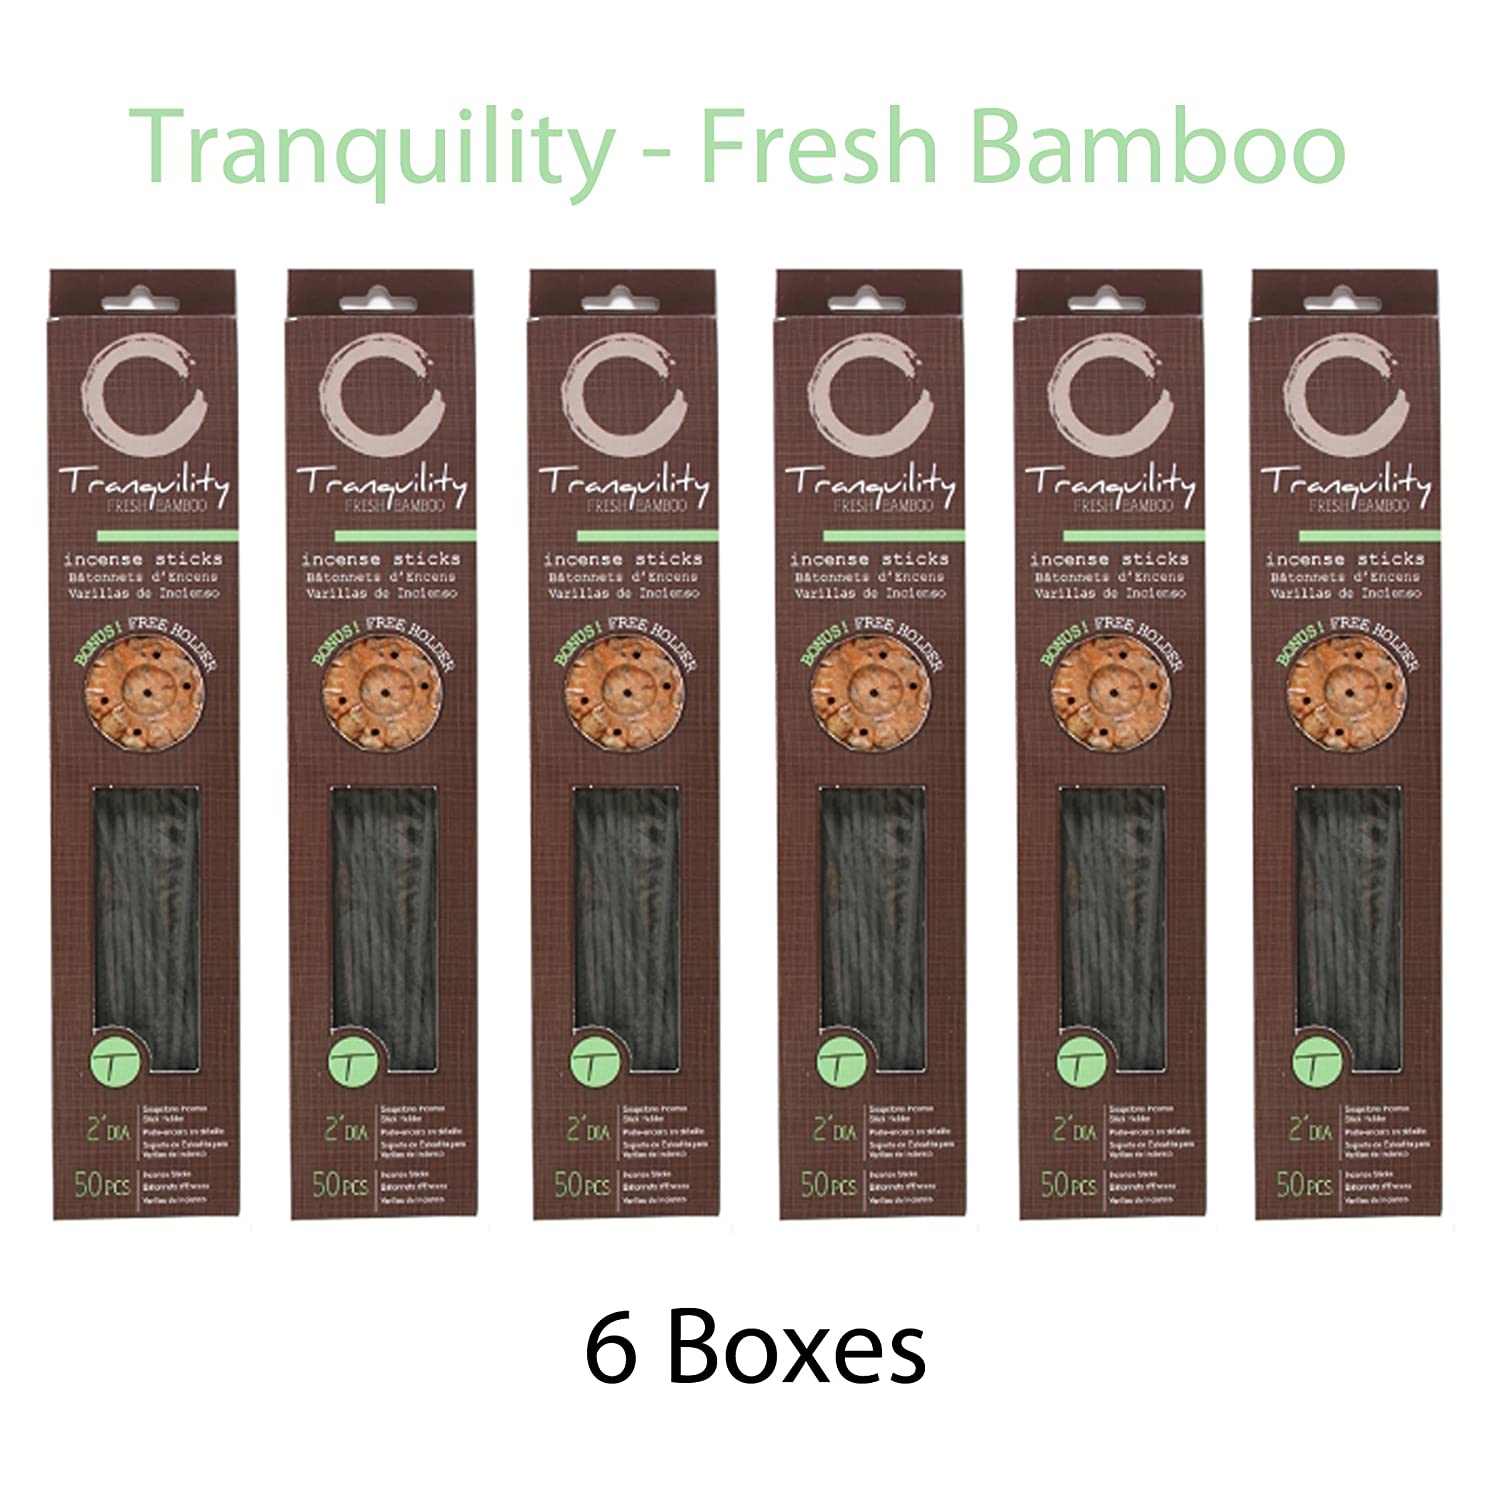 Hosley Candle Company Fresh Bamboo (Tranquility) Incense Sticks - Set of 6 / 50 sticks per box with bonus holder. Ideal for Spa, Aromatherapy, Everyday Use. HG Global AMH62749S